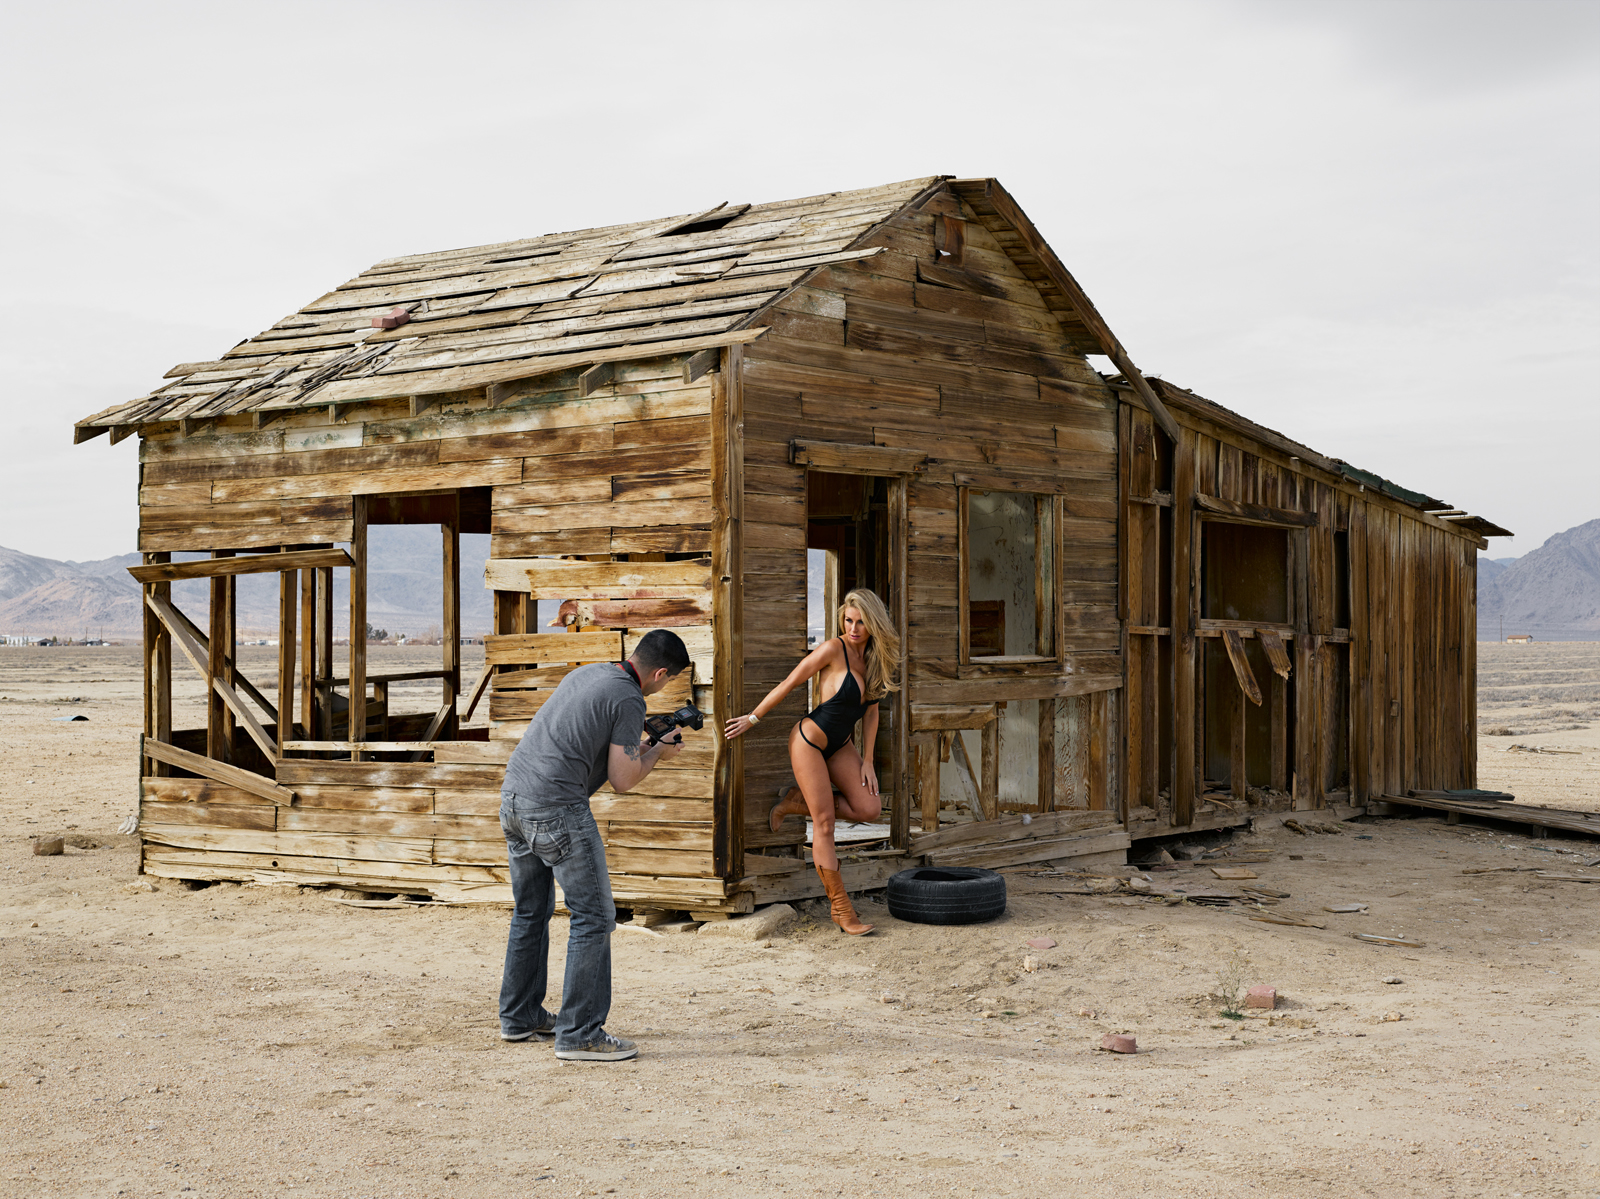 Dave and Jenny, swimsuit shoot on an abandoned farm, California. © Lucas Foglia, courtesy of Michael Hoppen Gallery, London.